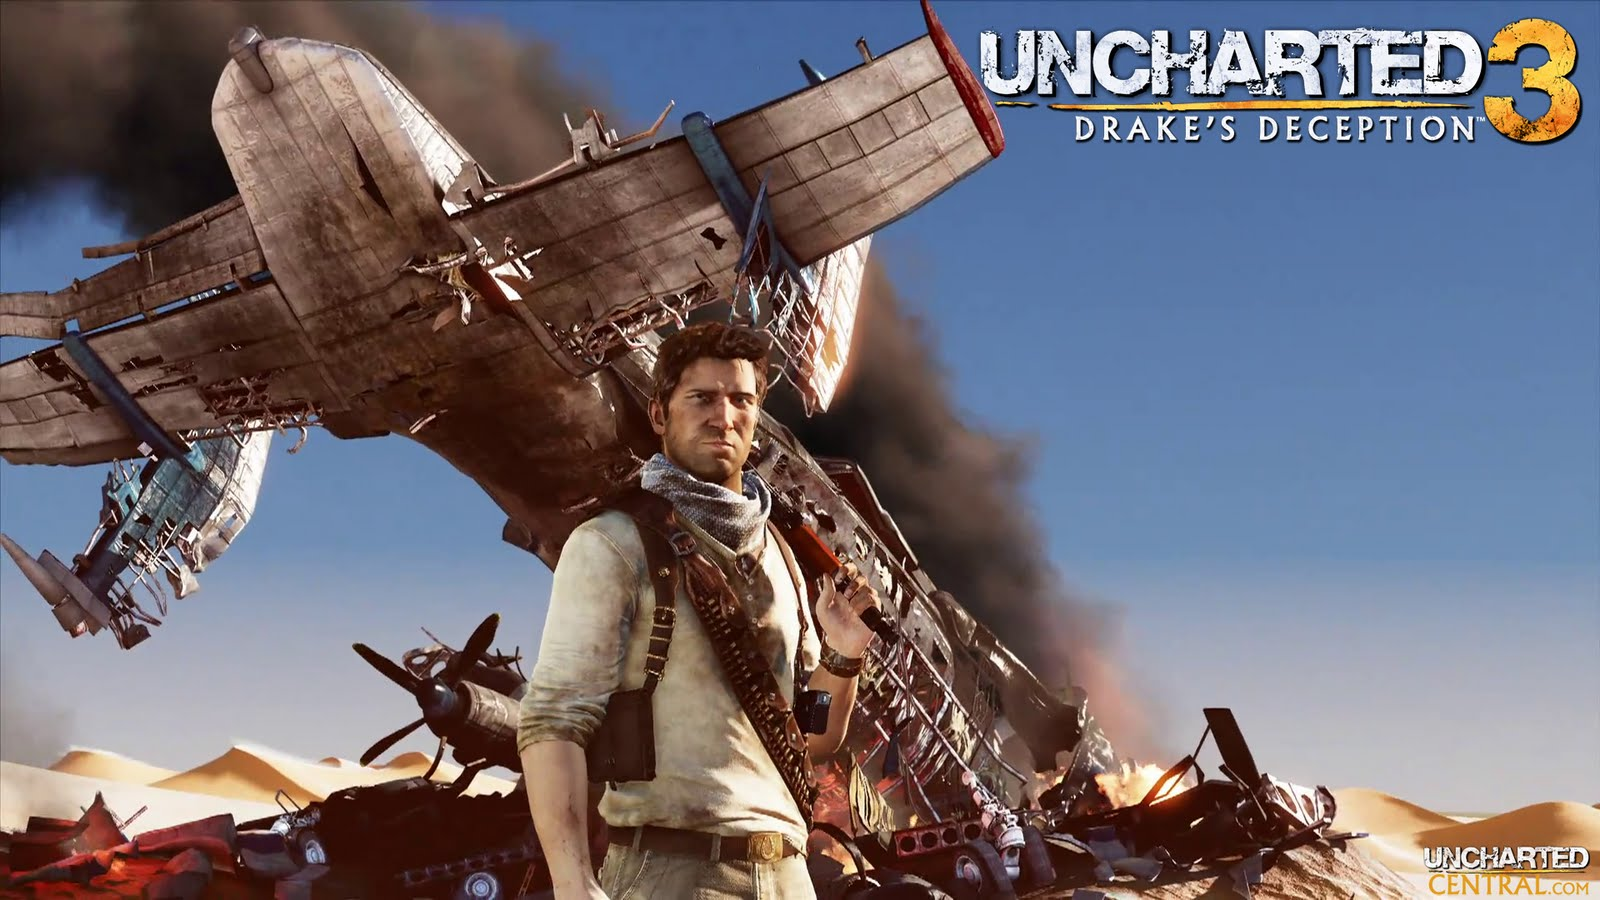 Videogames Universe Uncharted 3 Wallpaper in HD 1600x900